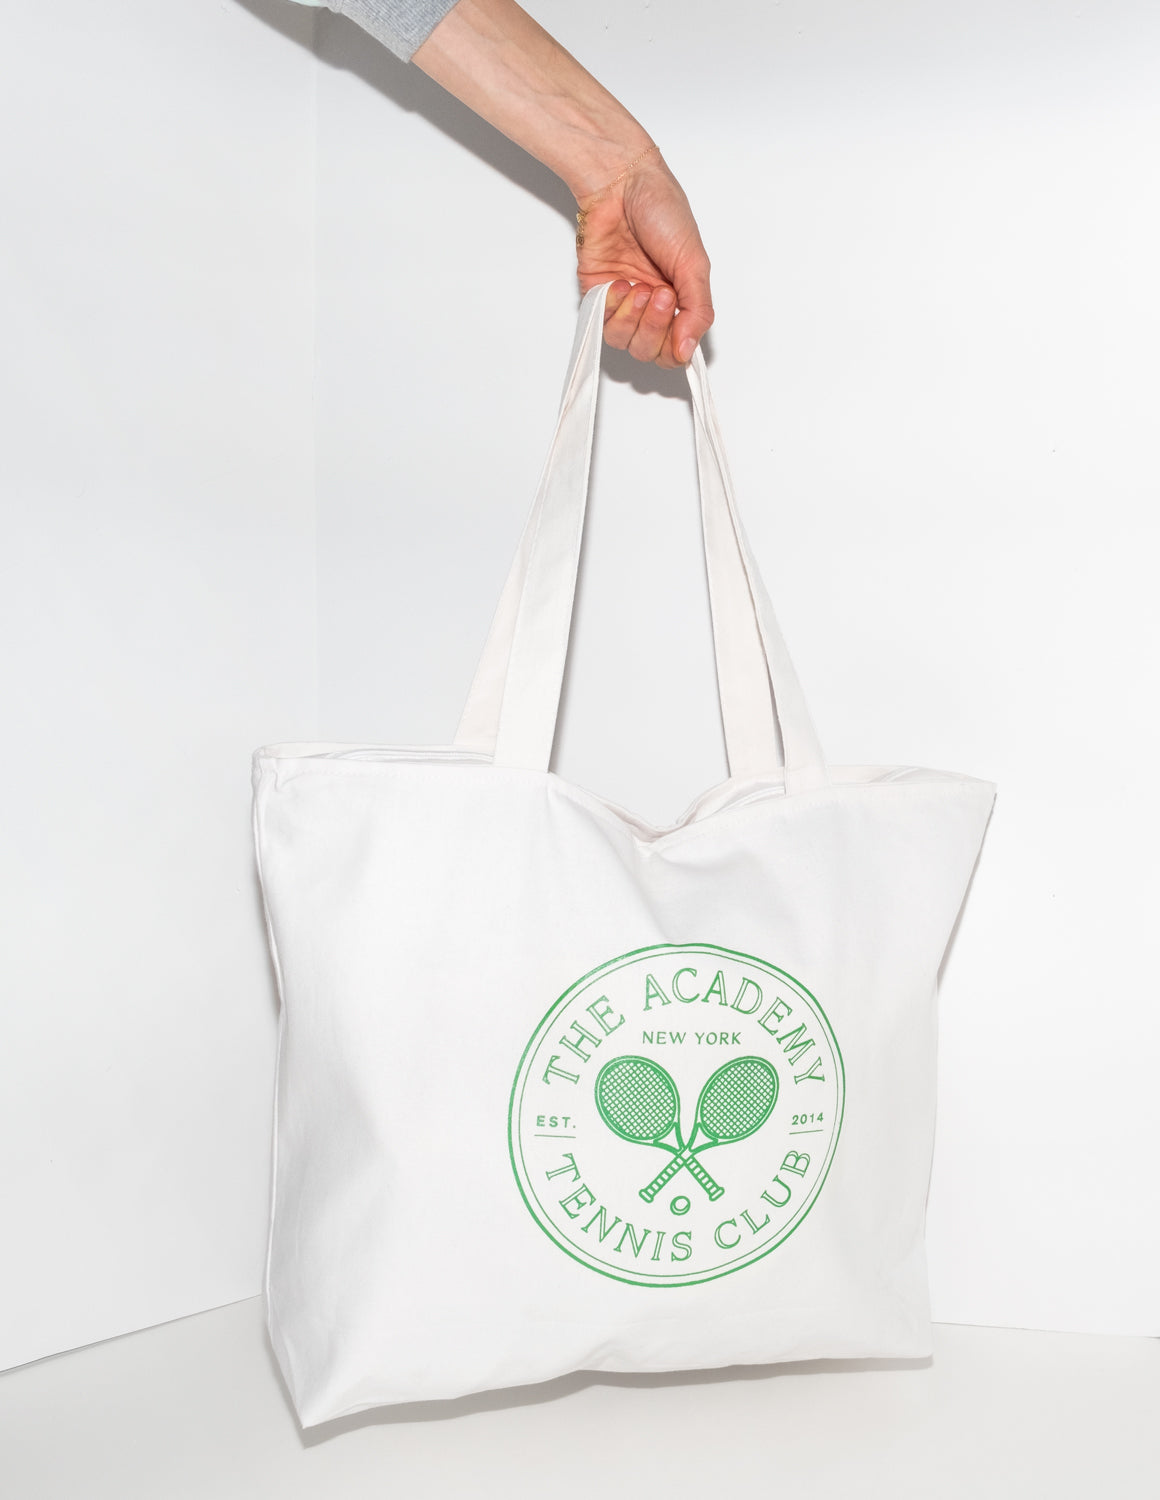 Tennis Club Tote Bag